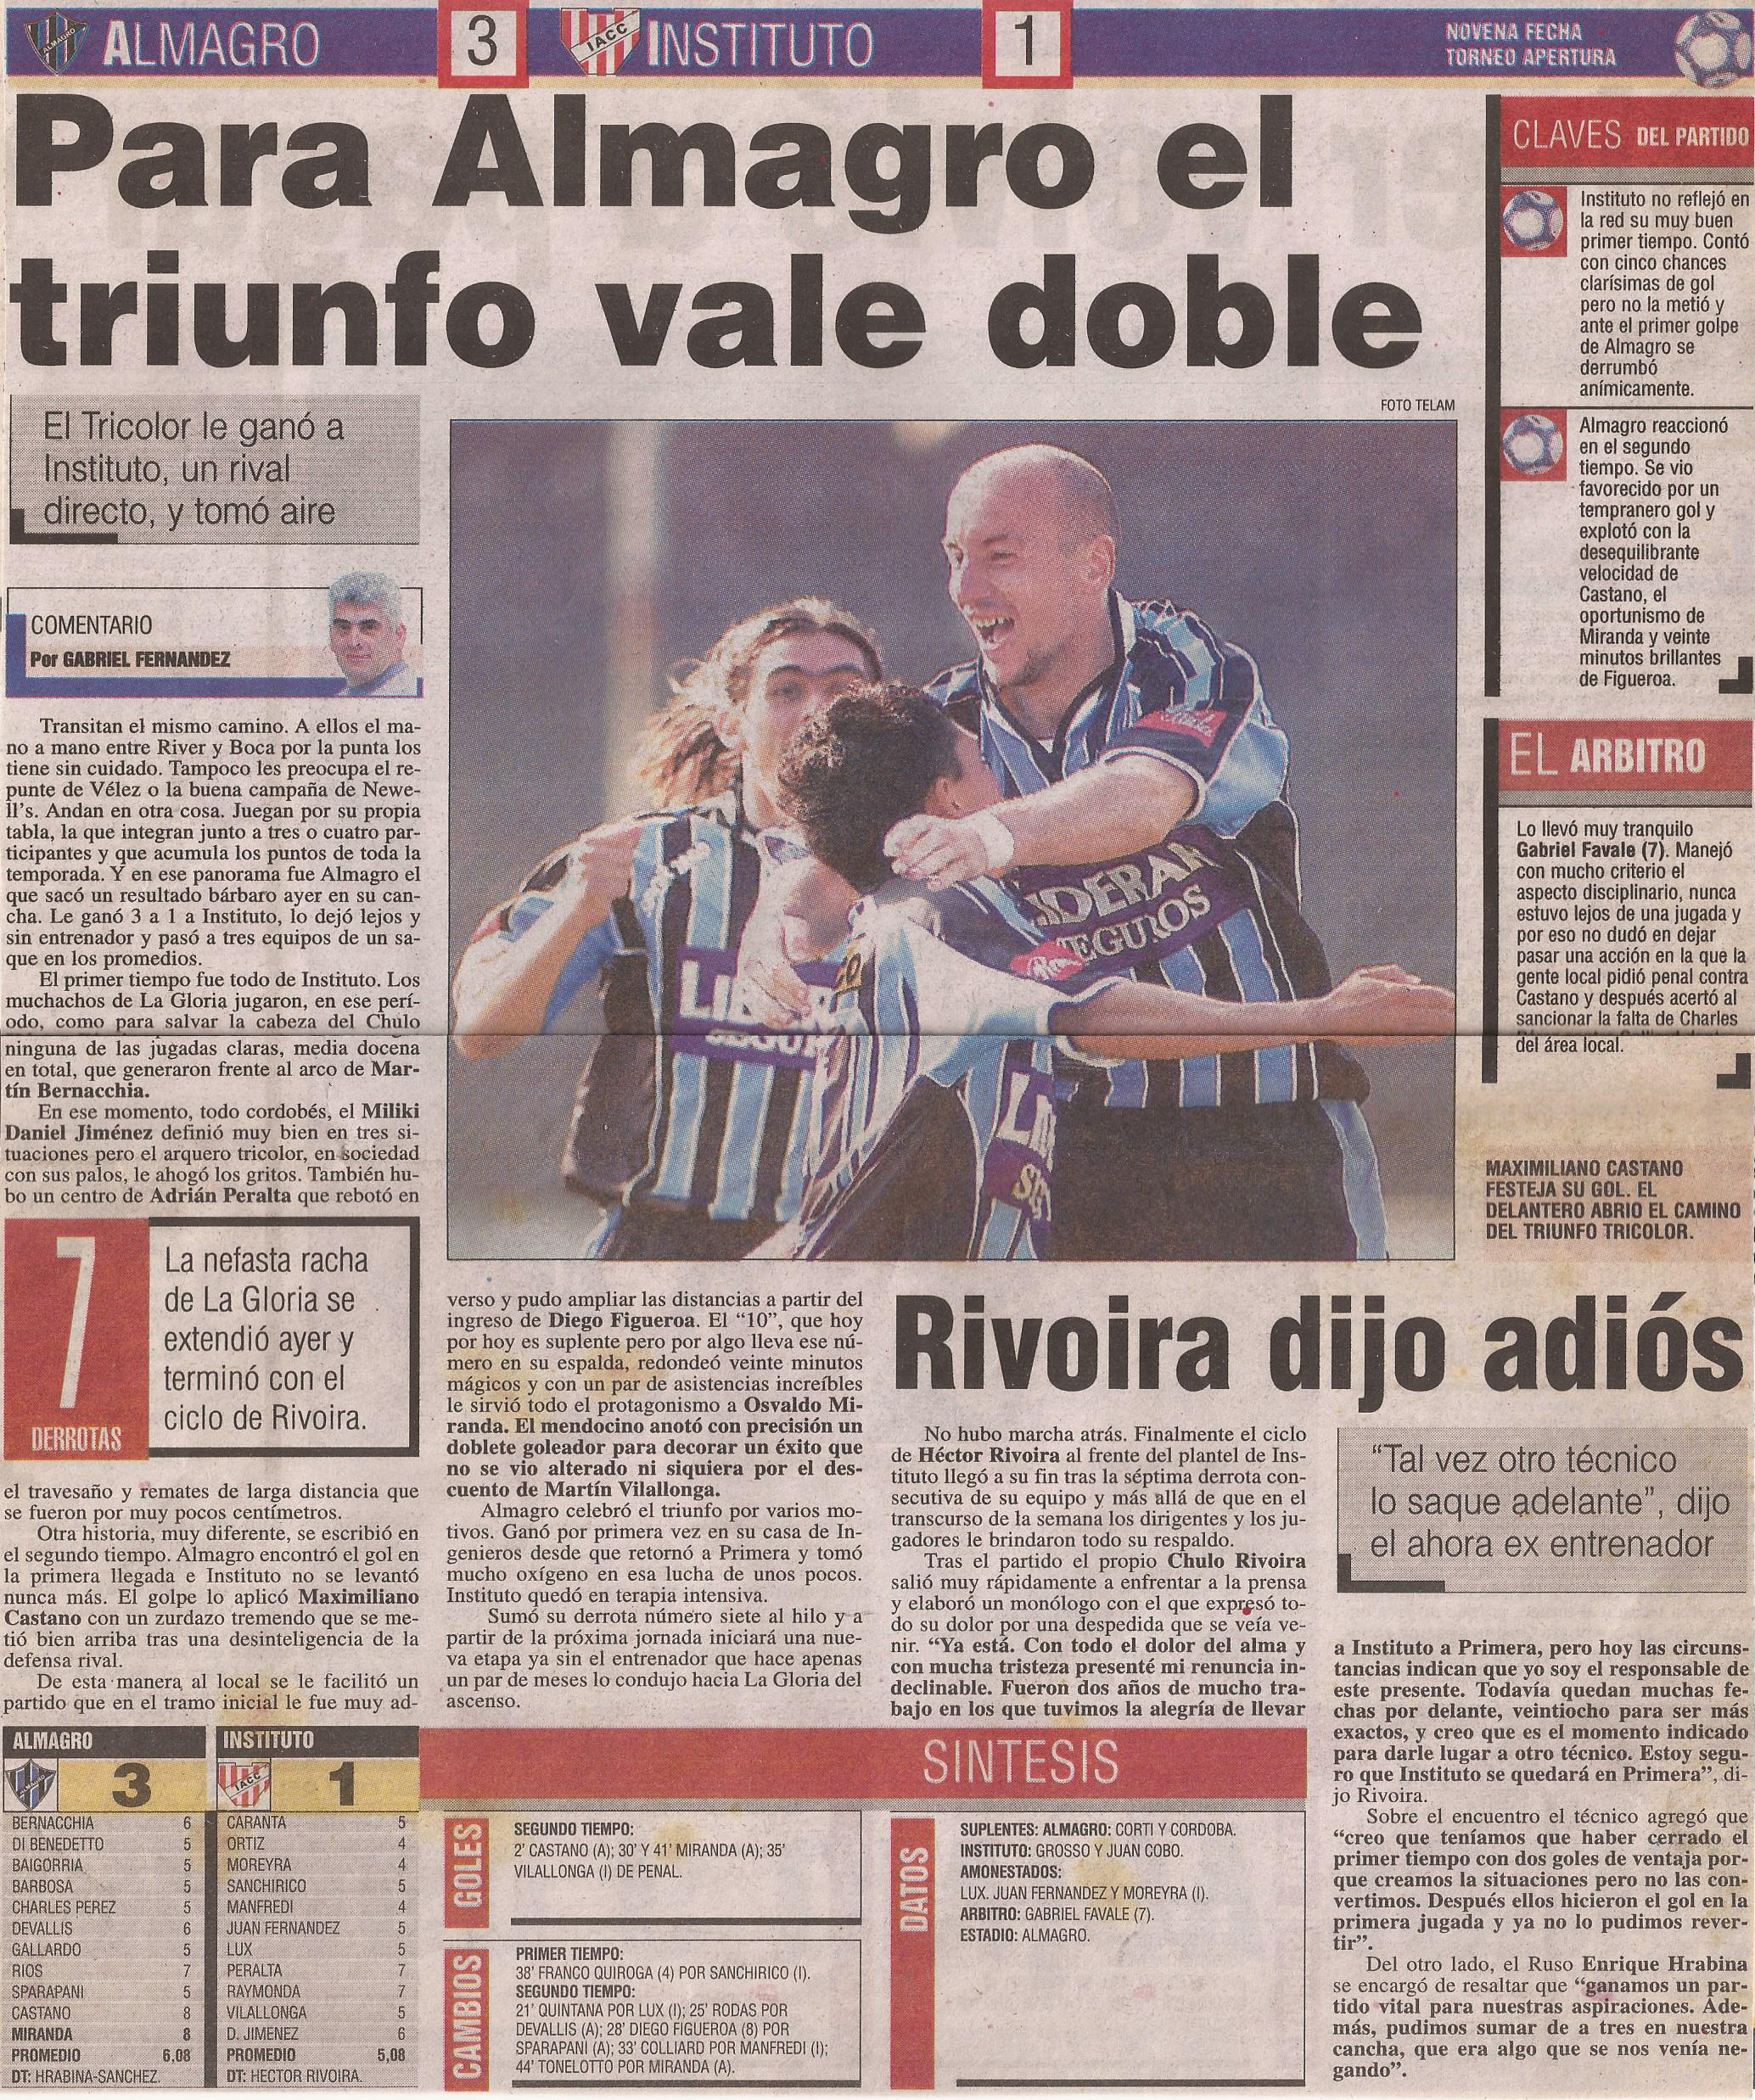 2004-05 Primera Division - Almagro vs Instituto - Diario Popular